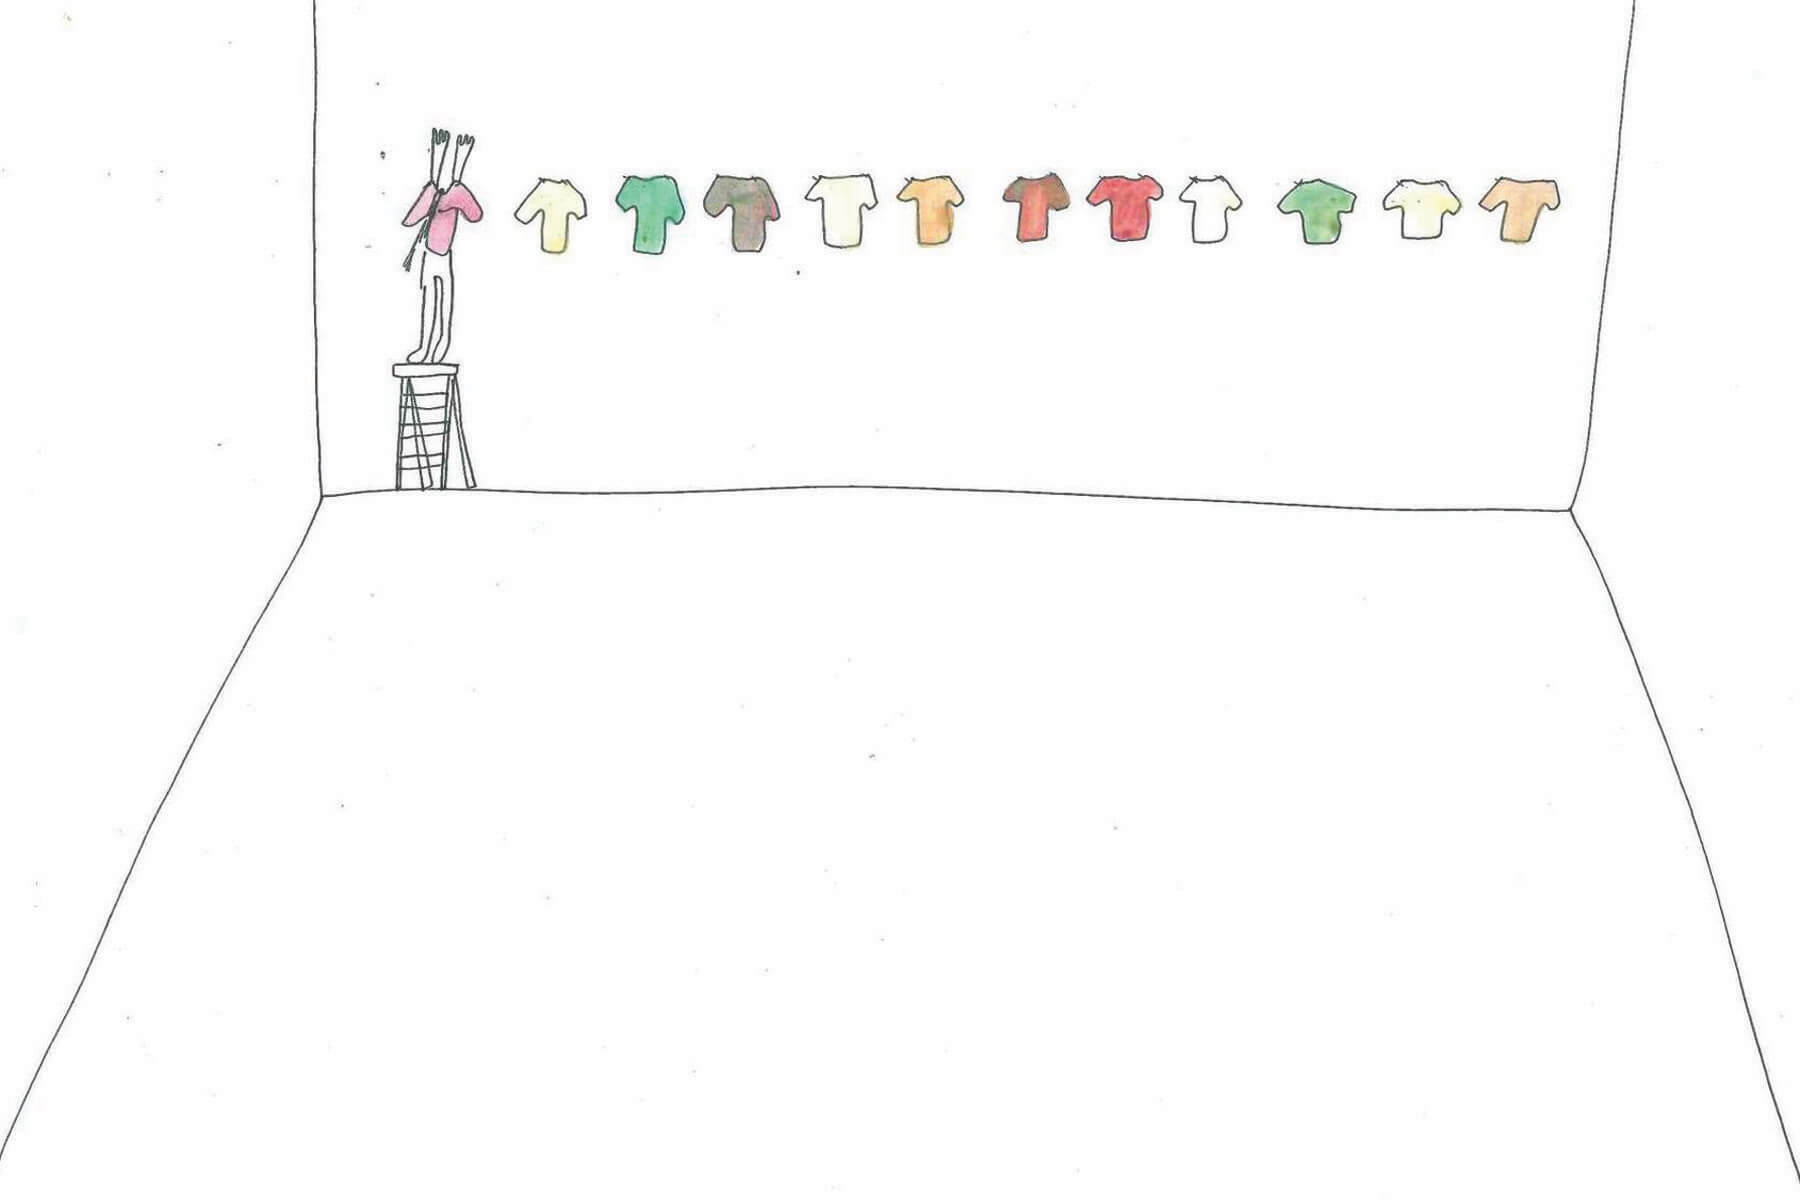 A simple line drawing on white, of a empty wall upon which 12 t-shirts are hung, in orange, green, gray, and white. On the far left, a figure stands on a stepladder and extends their arms up into the left-most pink t-shirt.